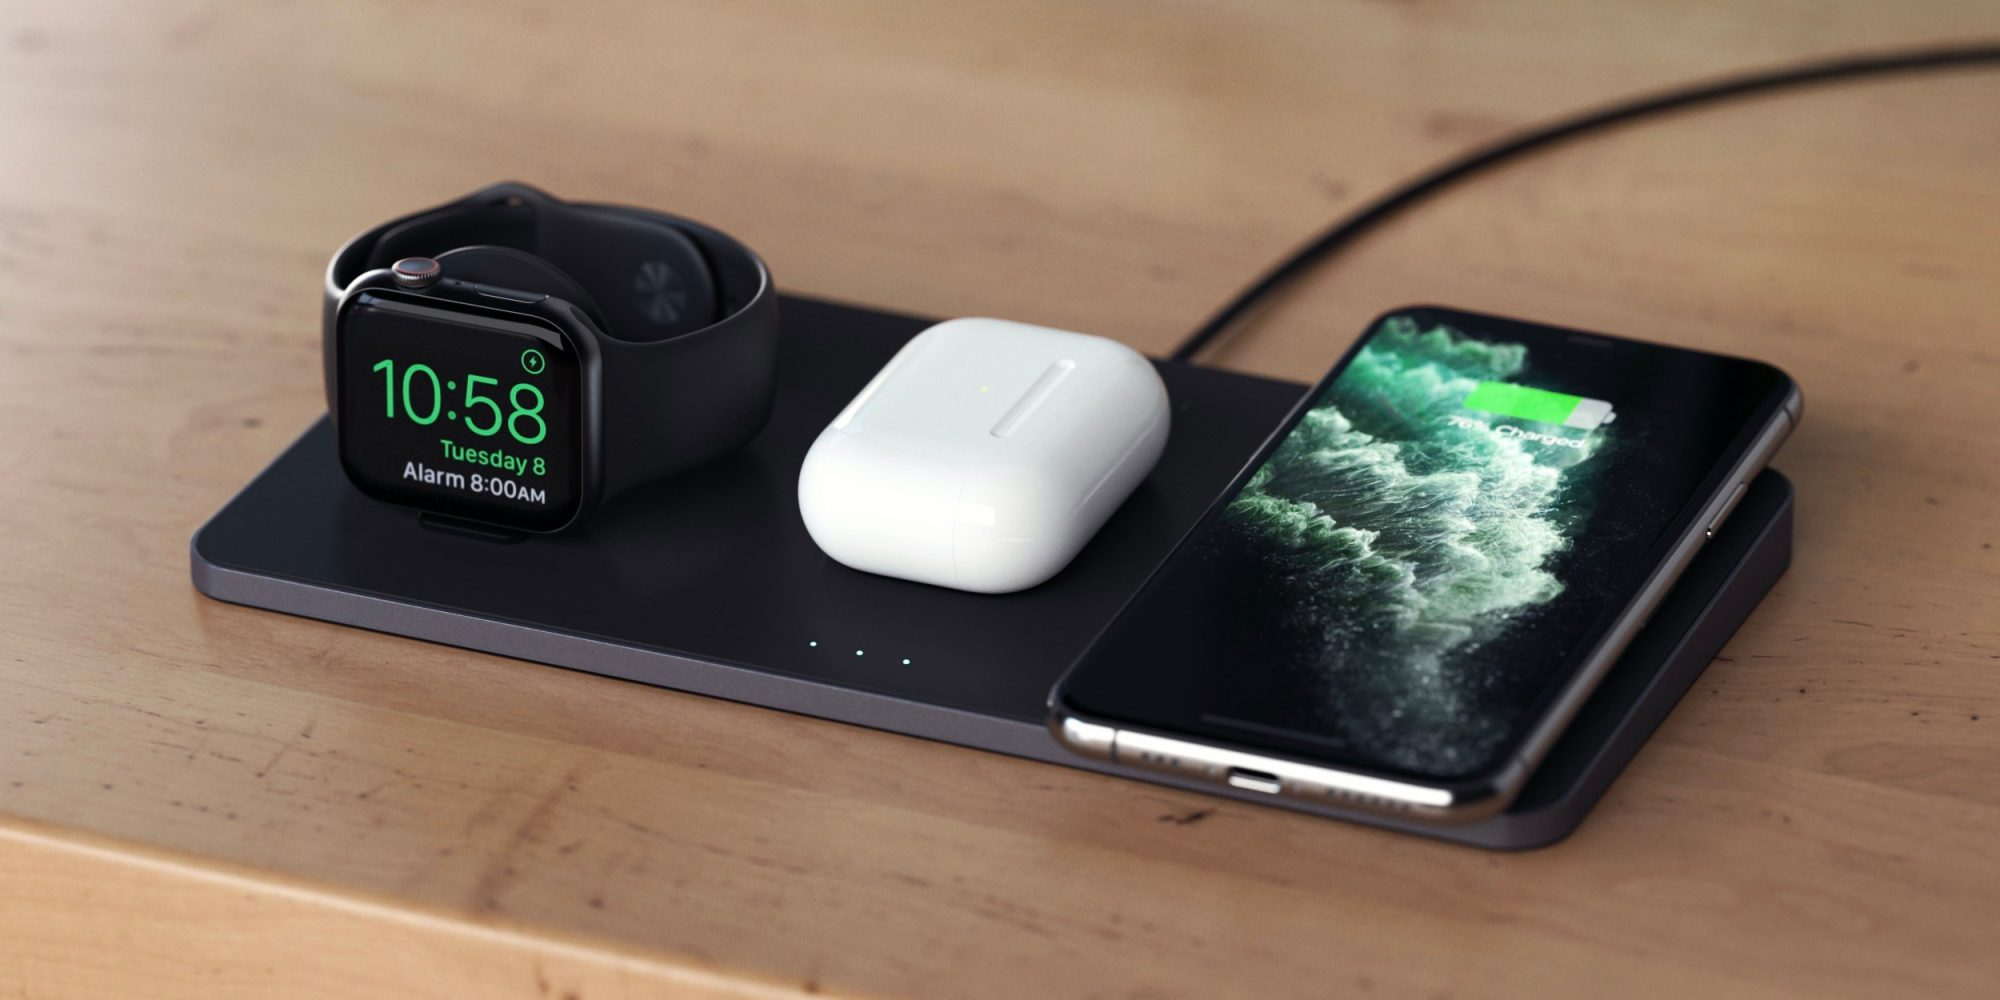 Carregador sem fio Satechi Trio Wireless Charging Pad